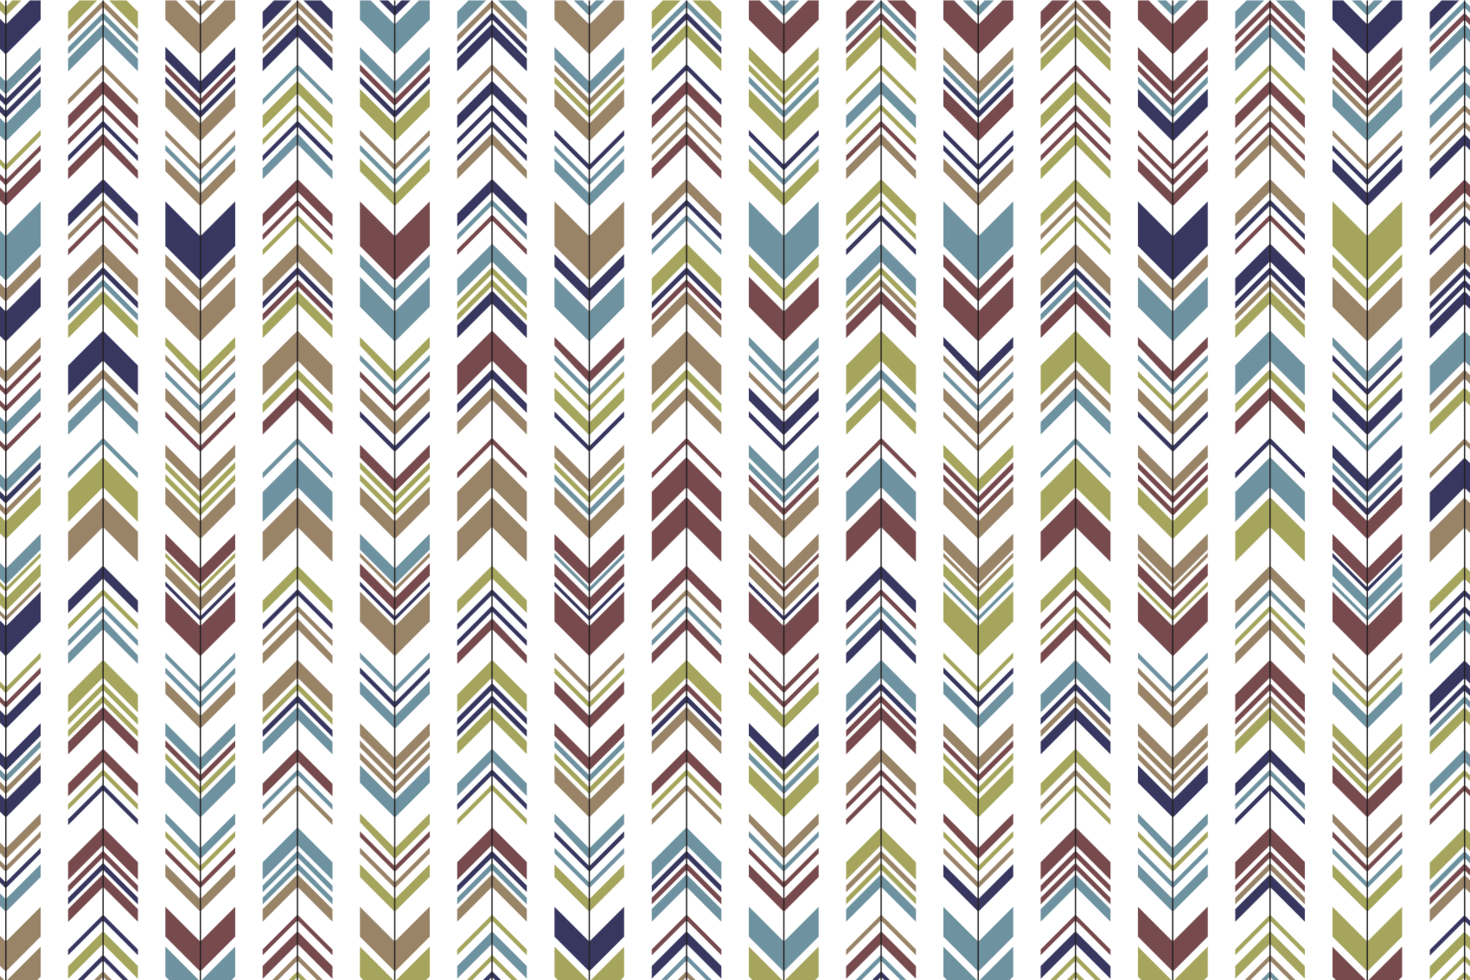 Colorful Arrows Fabric Pattern vector